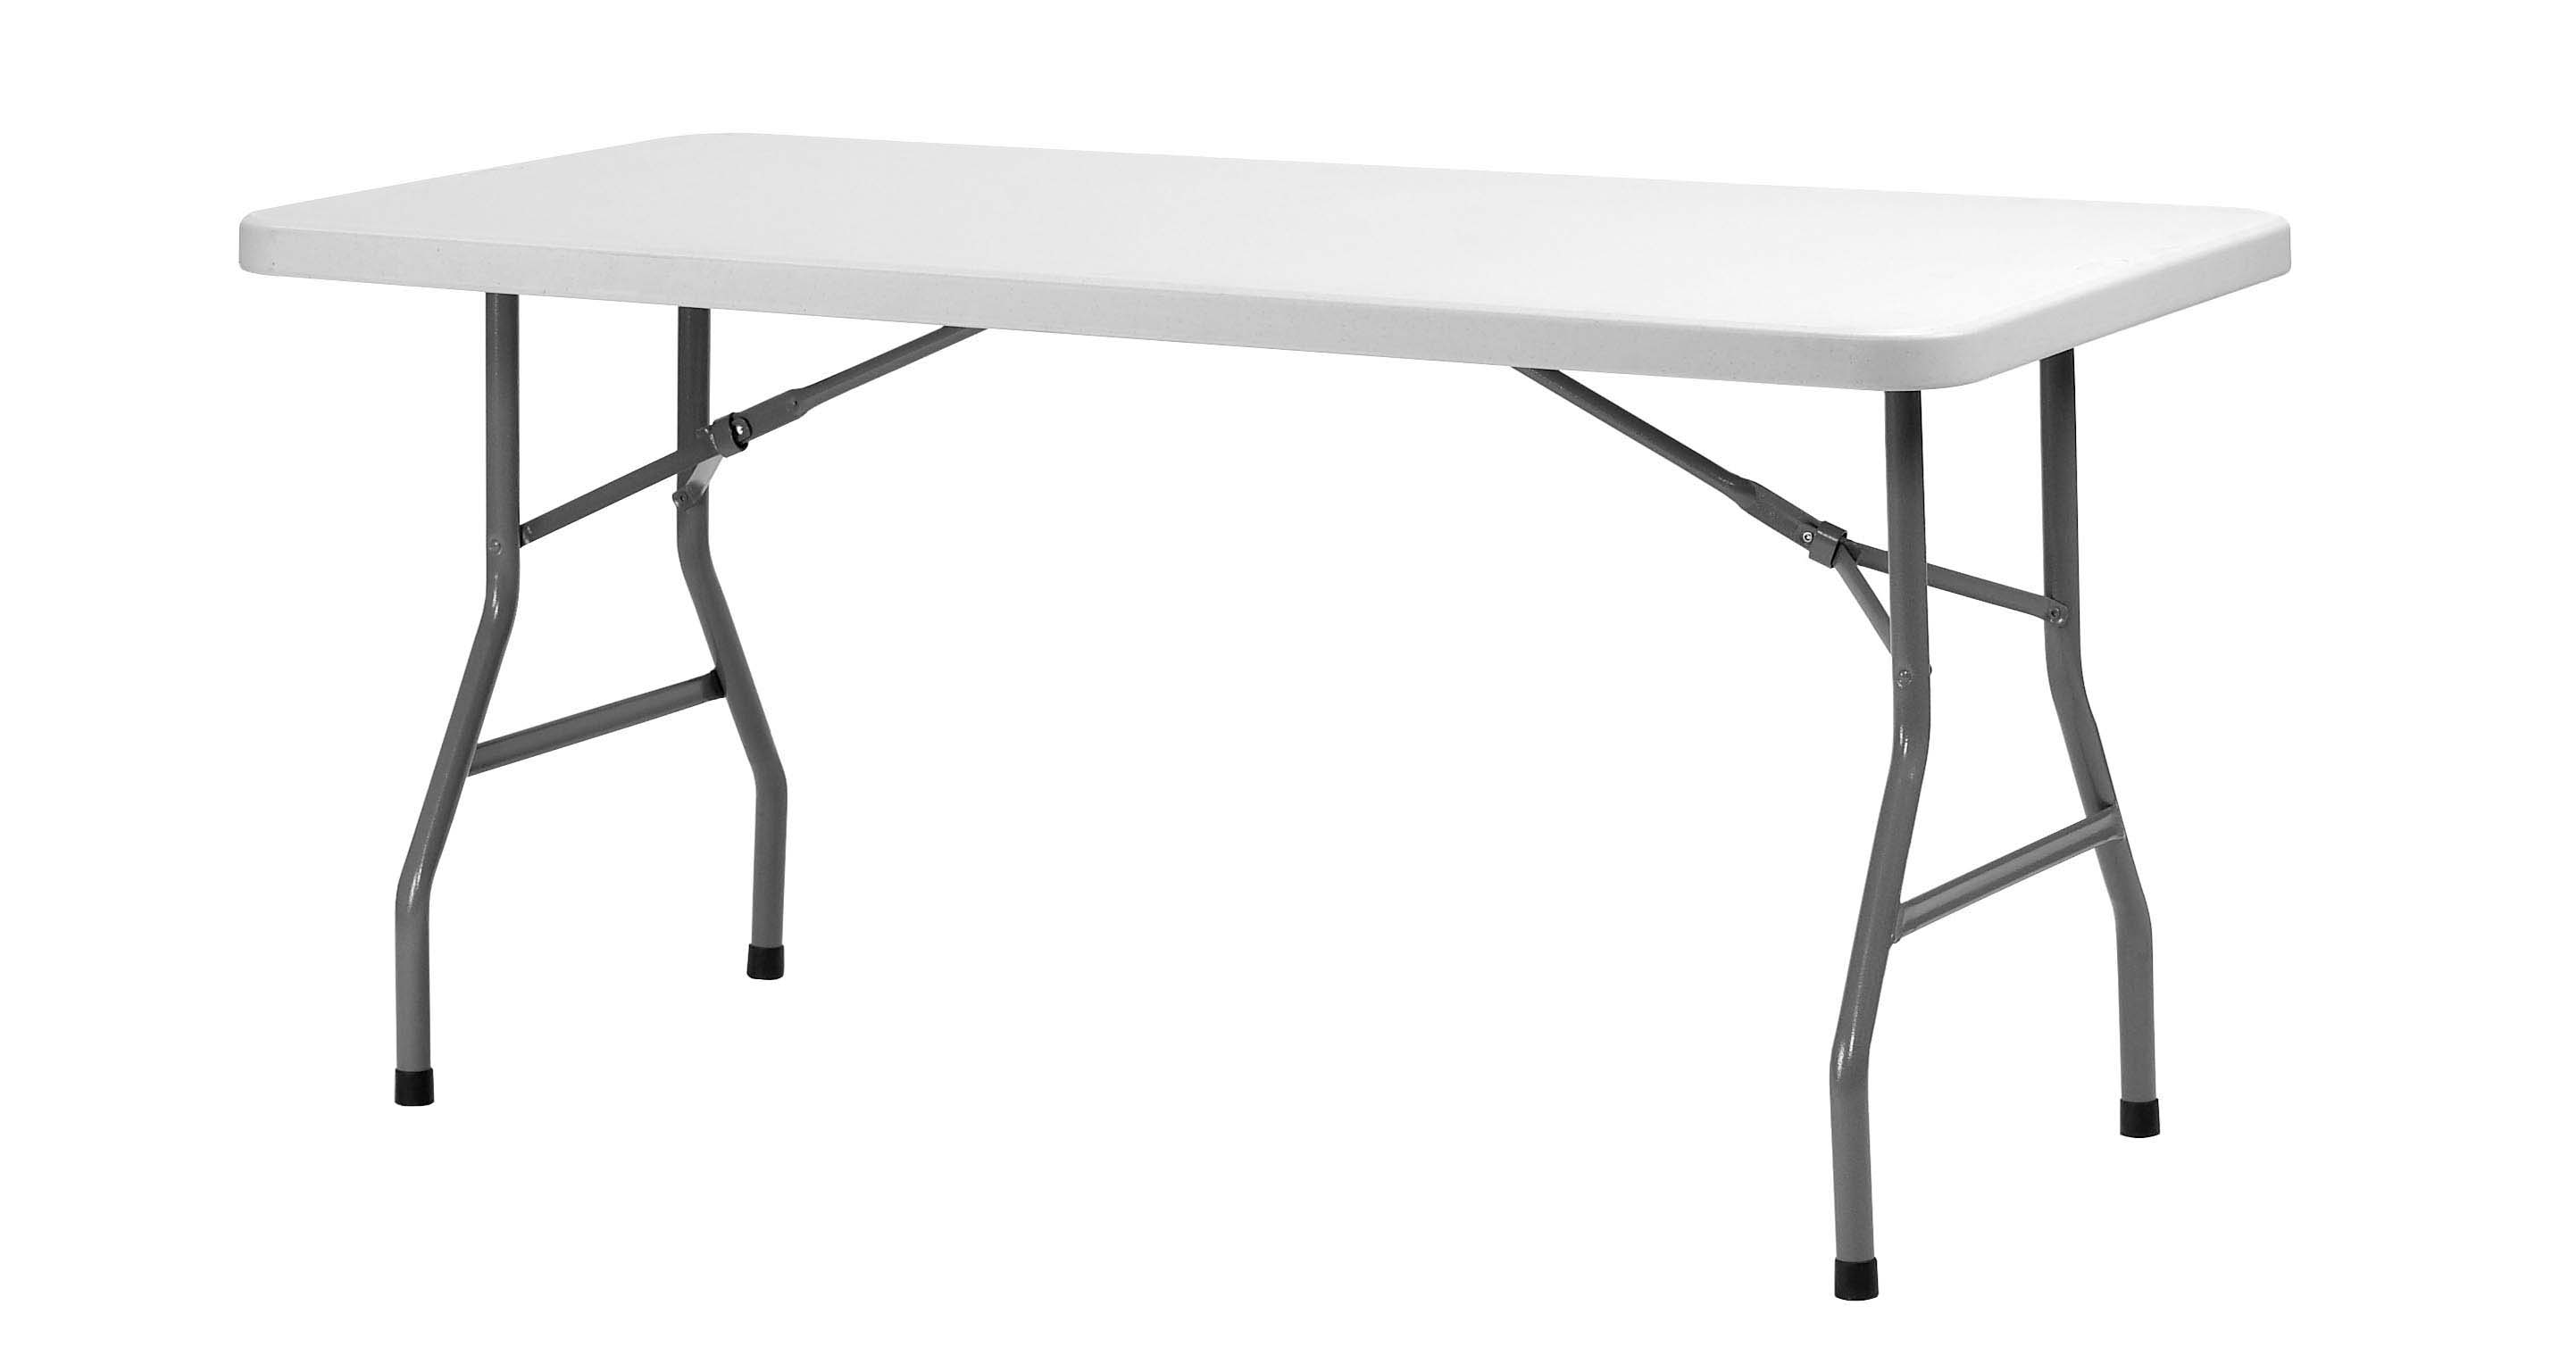 Table pliante rectangulaire hdpe 182x76cm comparer les for Grande table pliante ikea